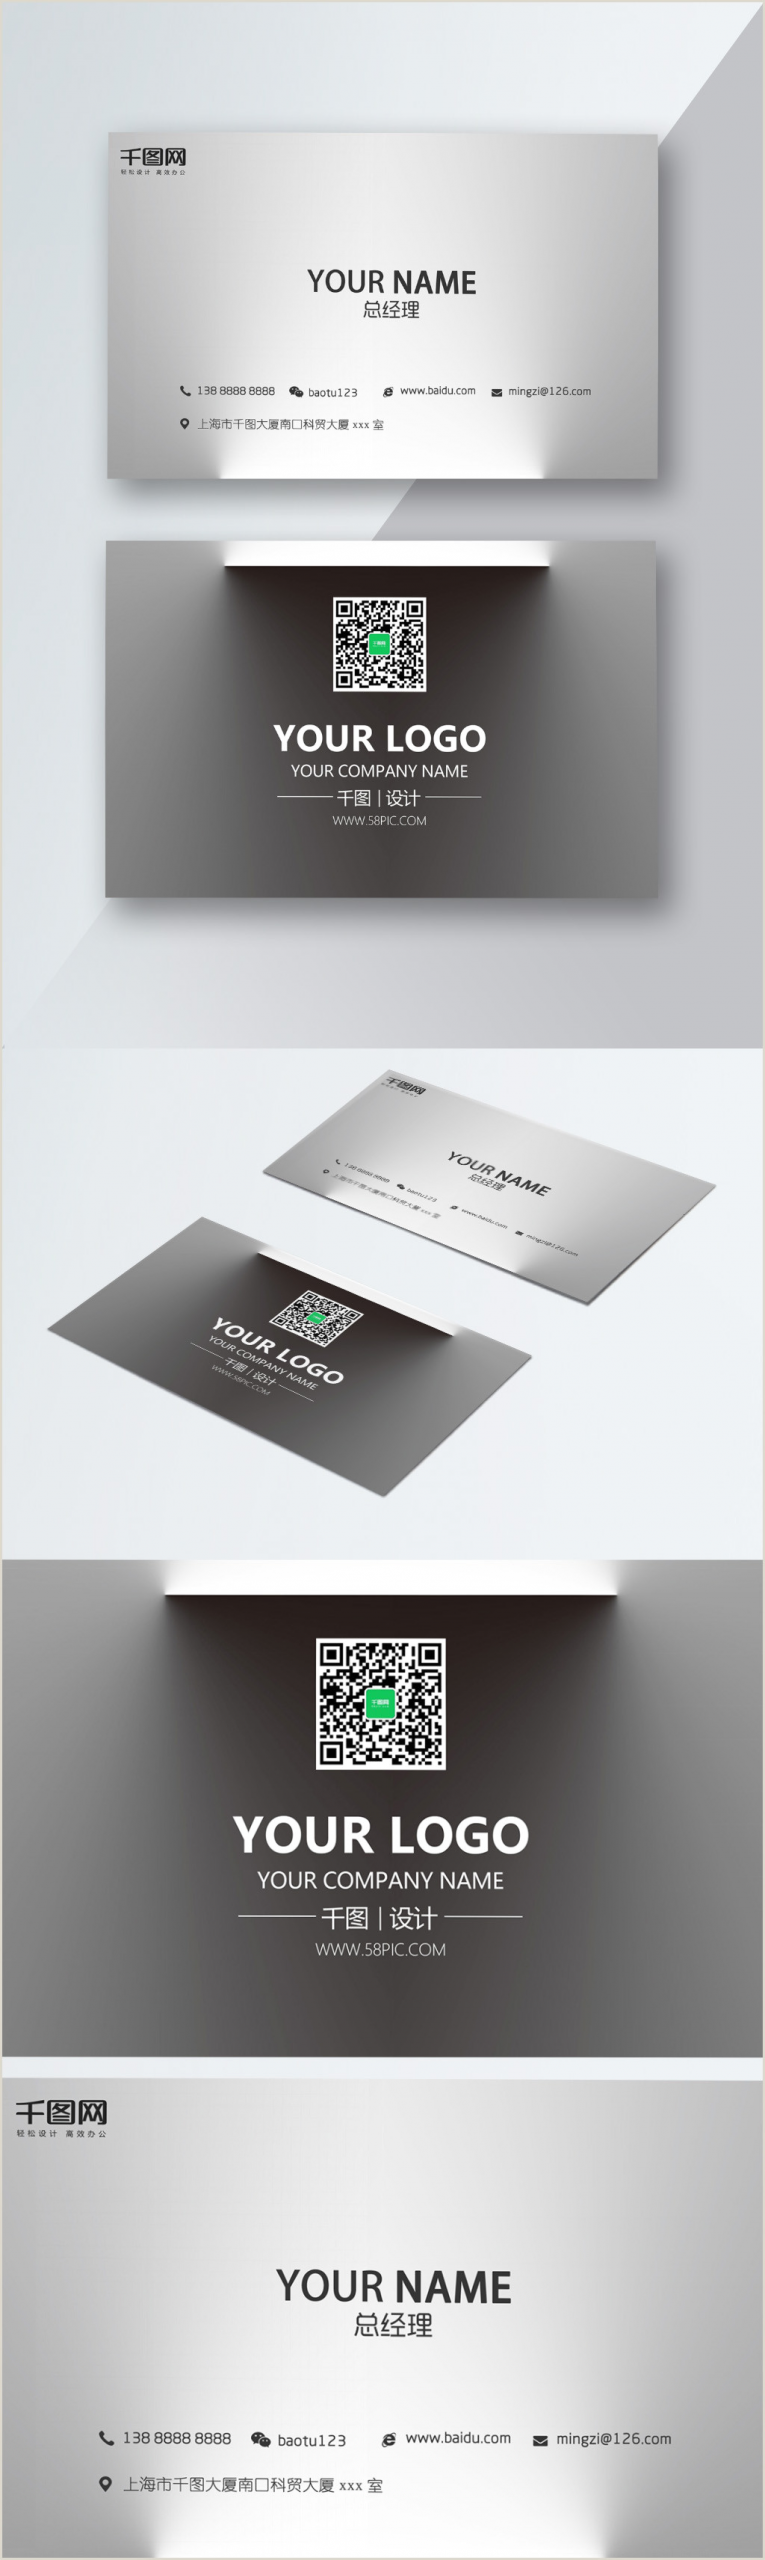 Black And White Business Cards Simple Black And White Business Card Template Image Picture